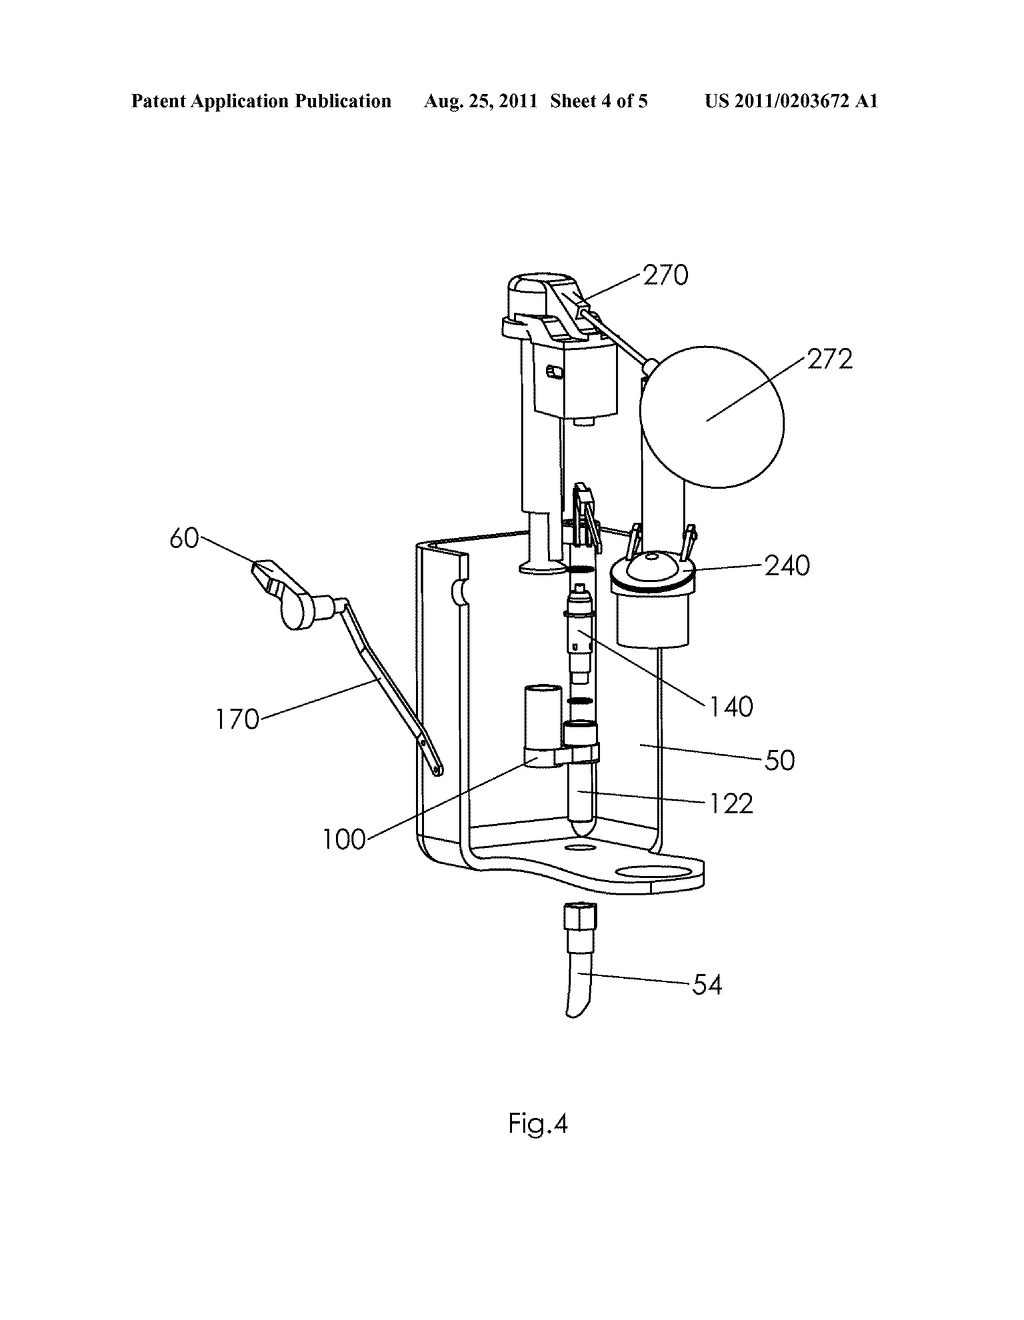 hight resolution of dual valve method and apparatus for limiting toilet water flow diagram schematic and image 05